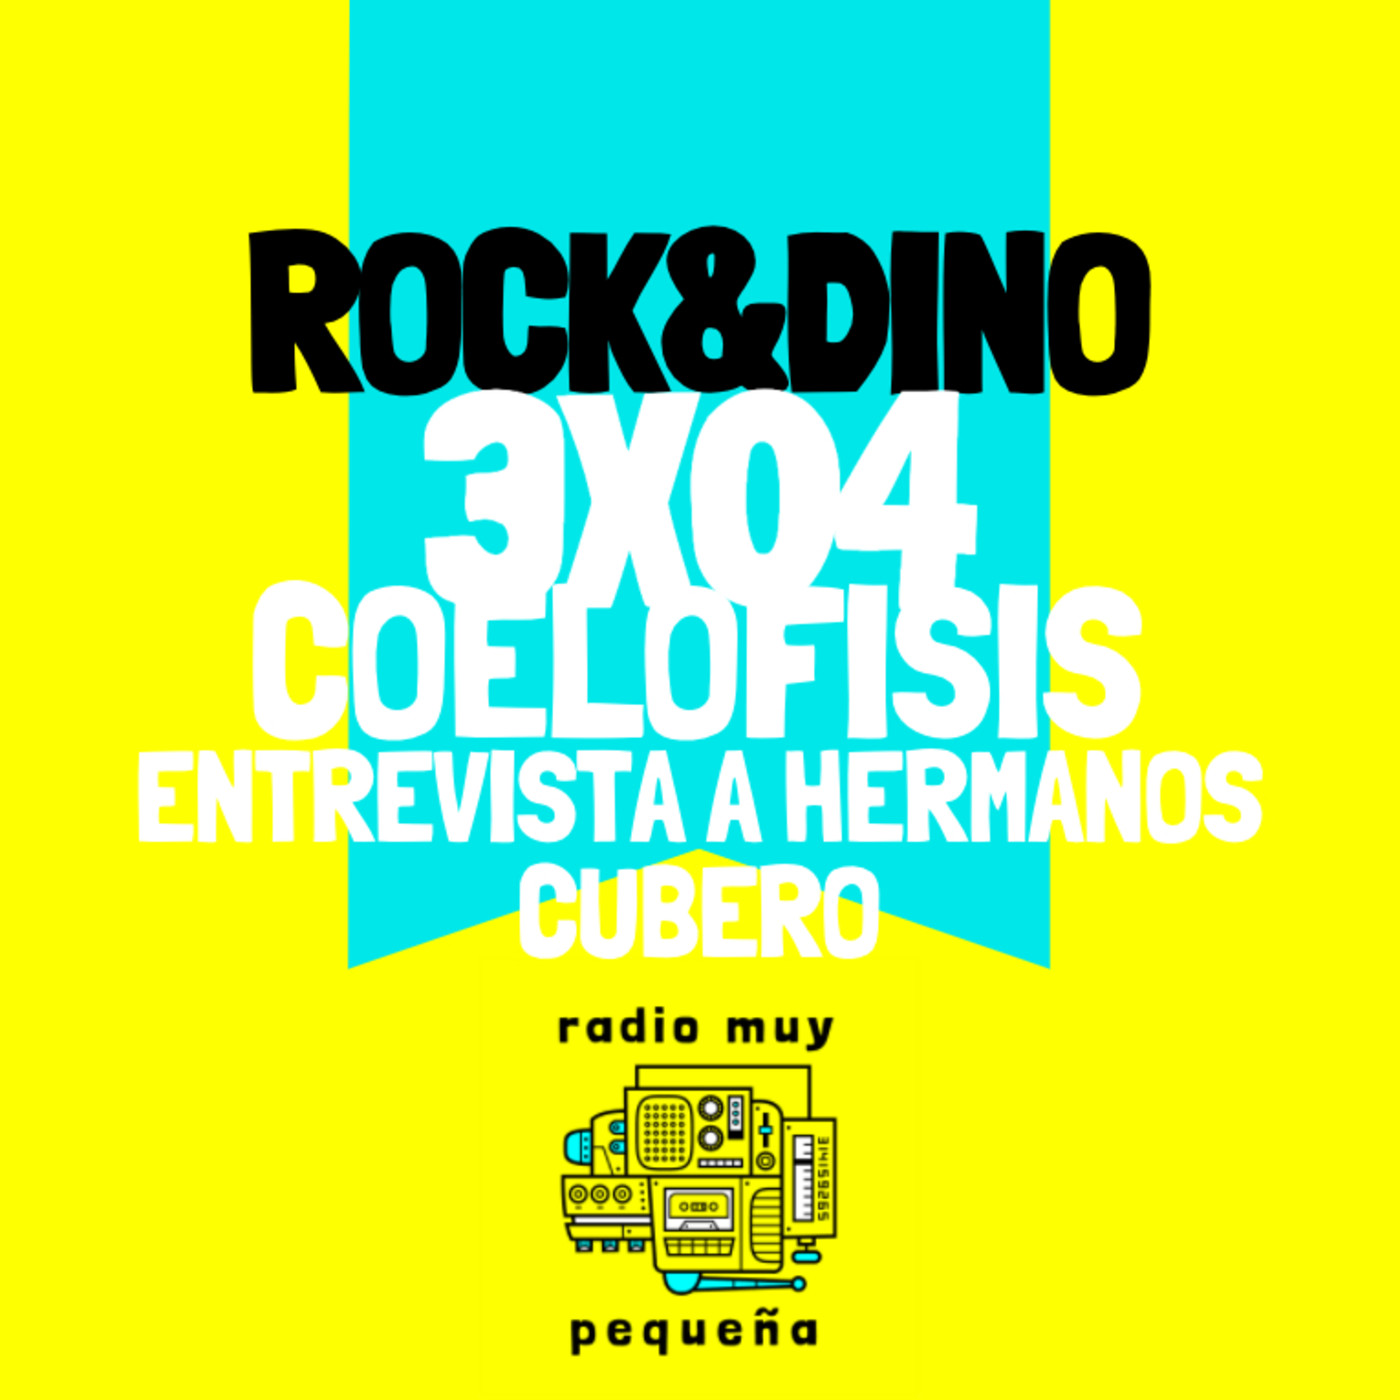 Rock and Dino I 3x04 l Coelofisis y Hermanos Cubero